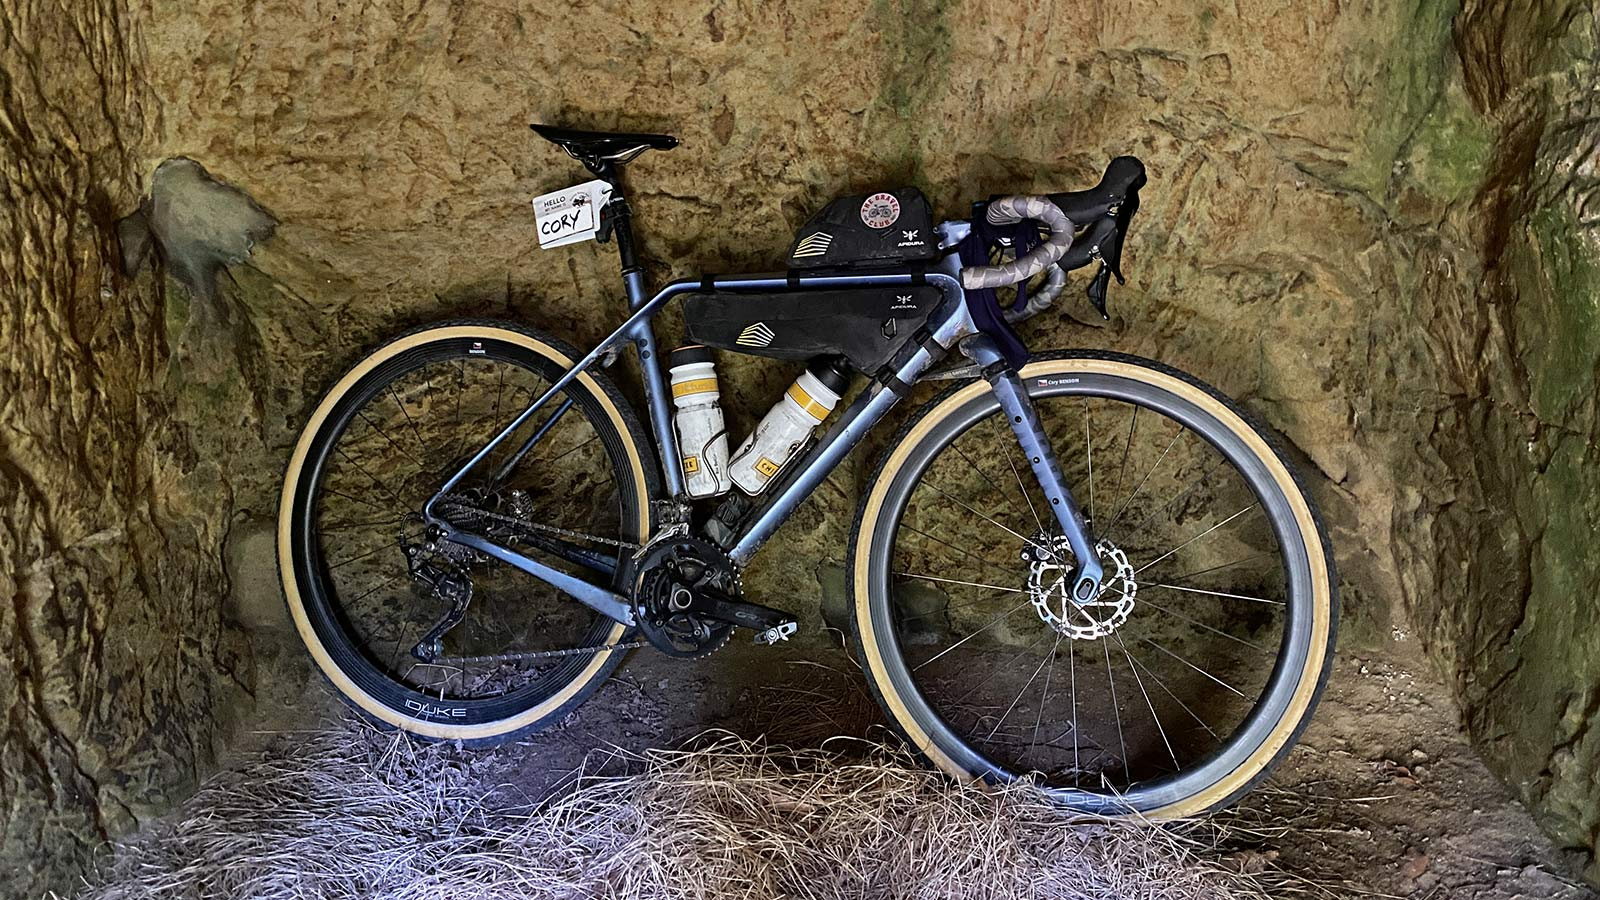 Challenge triples Getaway sizes, give gravel new rubber, plus more tubeless tubulars